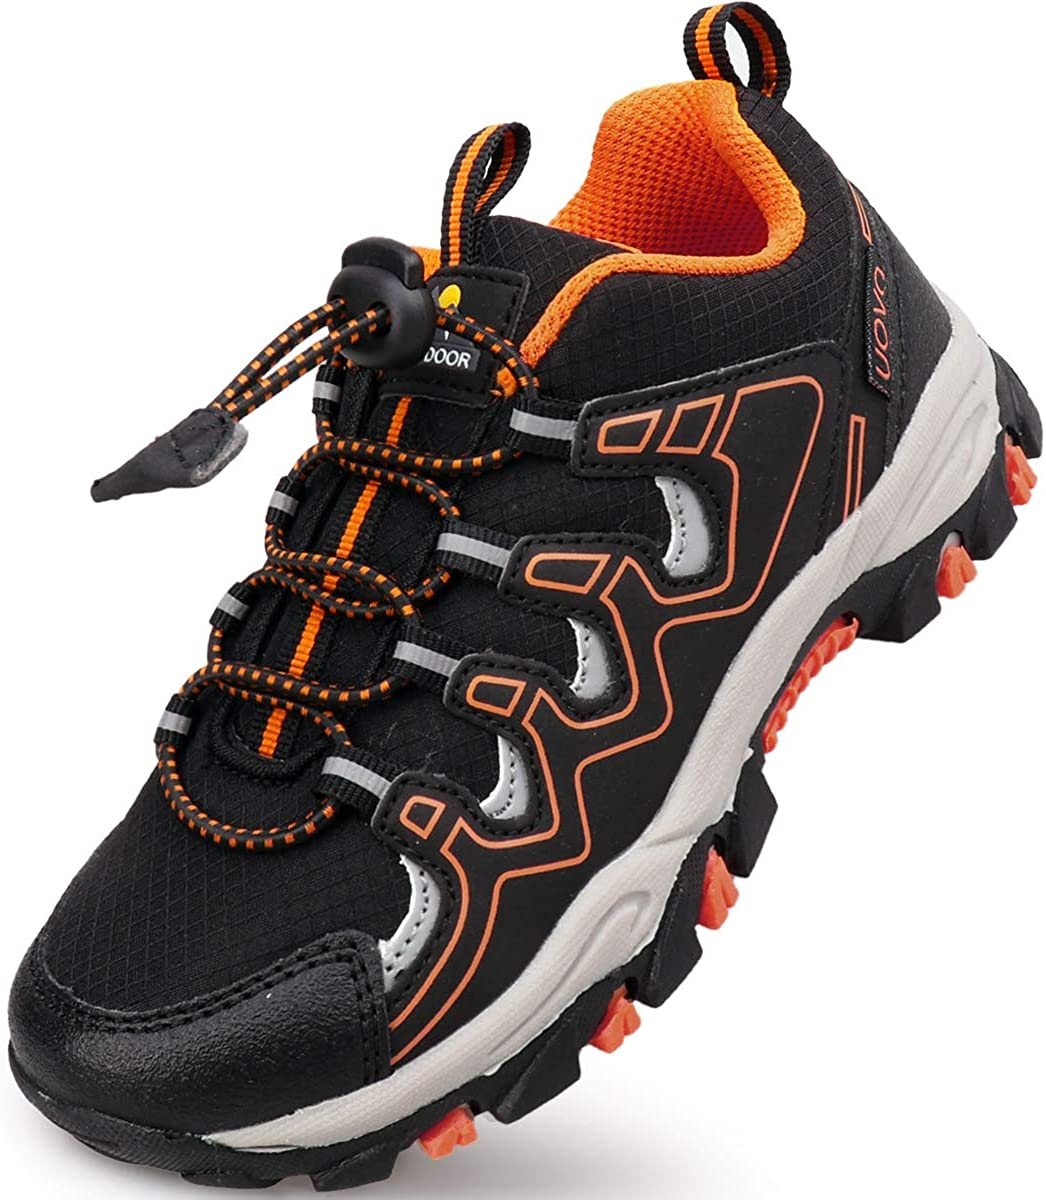 Boys Shoes Tennis Running Sneakers Hiking Shoes Kids Athletic Outdoor for Boys